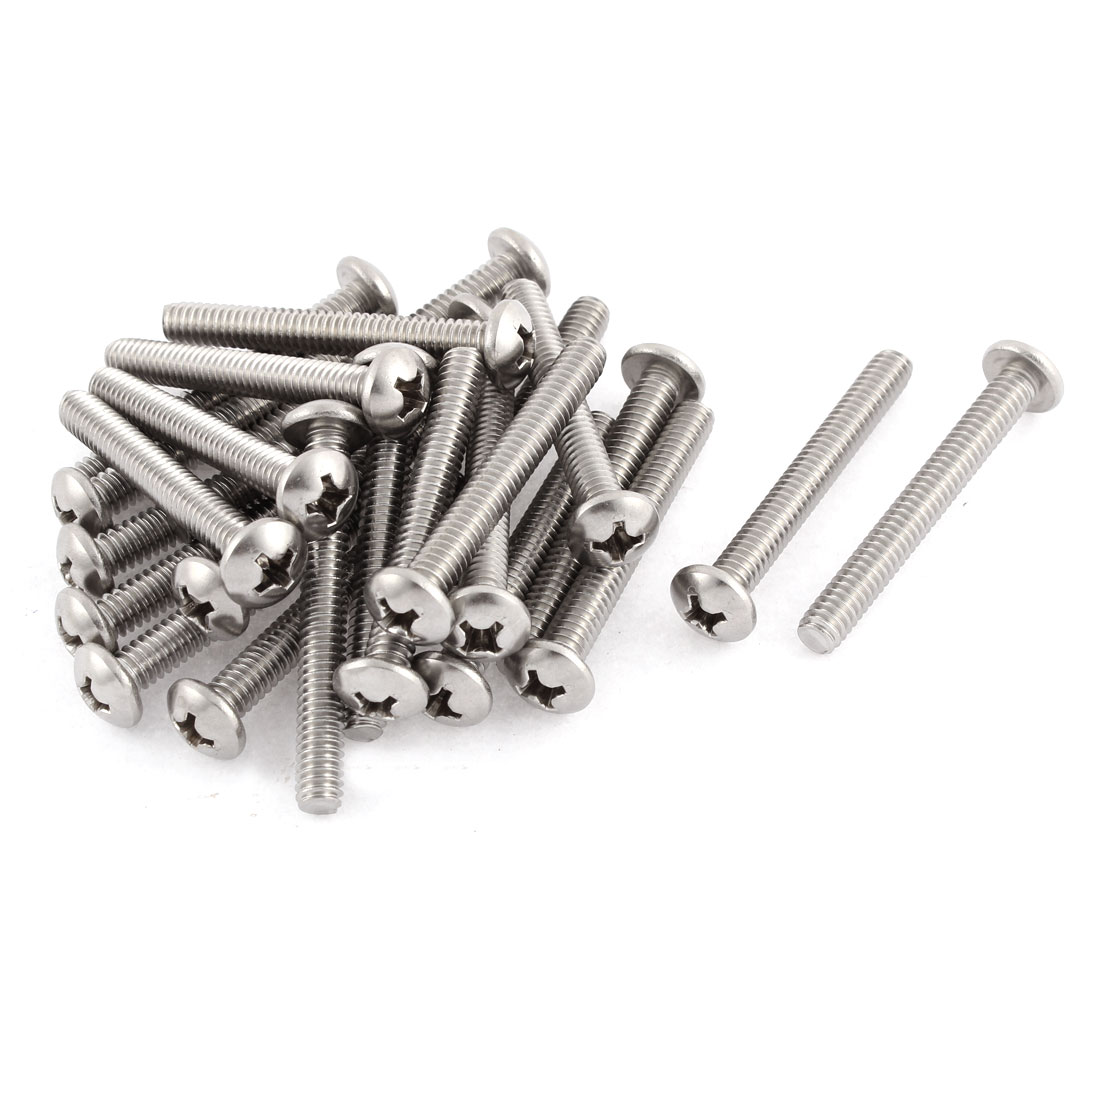 "56mm Long 1/4""x20x2"" Stainless Steel Phillips Cross Head Screws Bolts 25 Pcs"